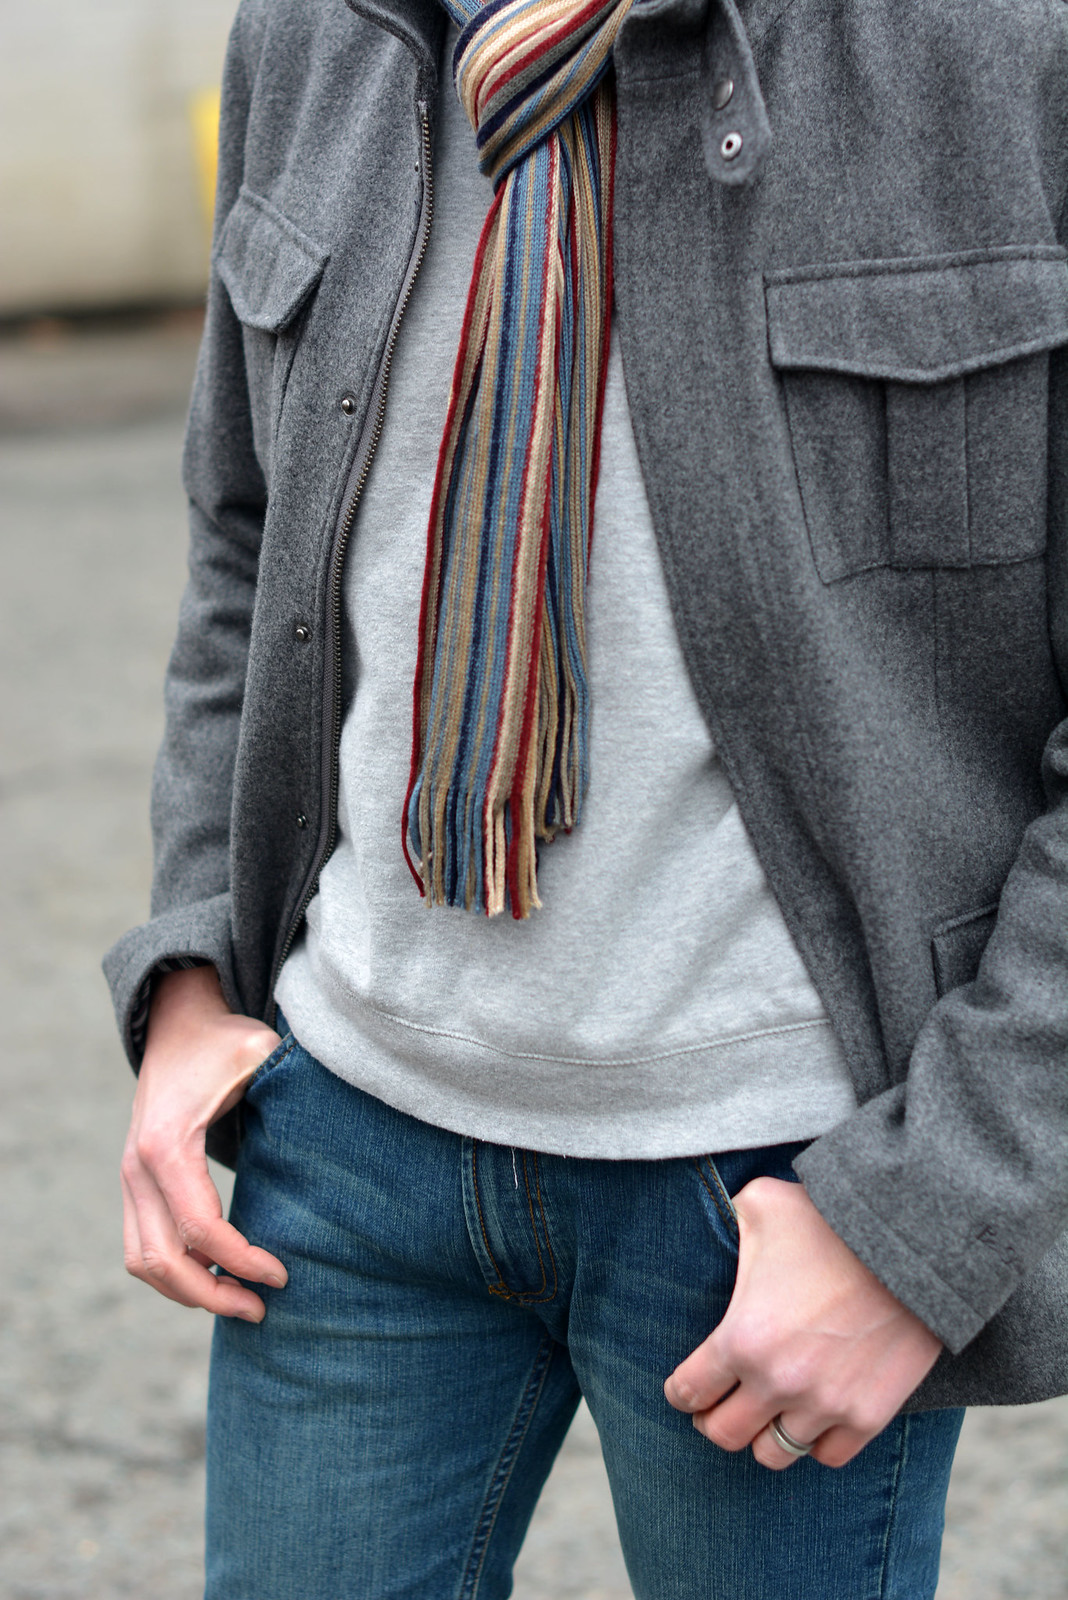 How to wear not-too-skinny skinny jeans: Grey wool jacket \ baseball cap \ striped scarf \ desert boots | Silver Londoner, over 40 menswear